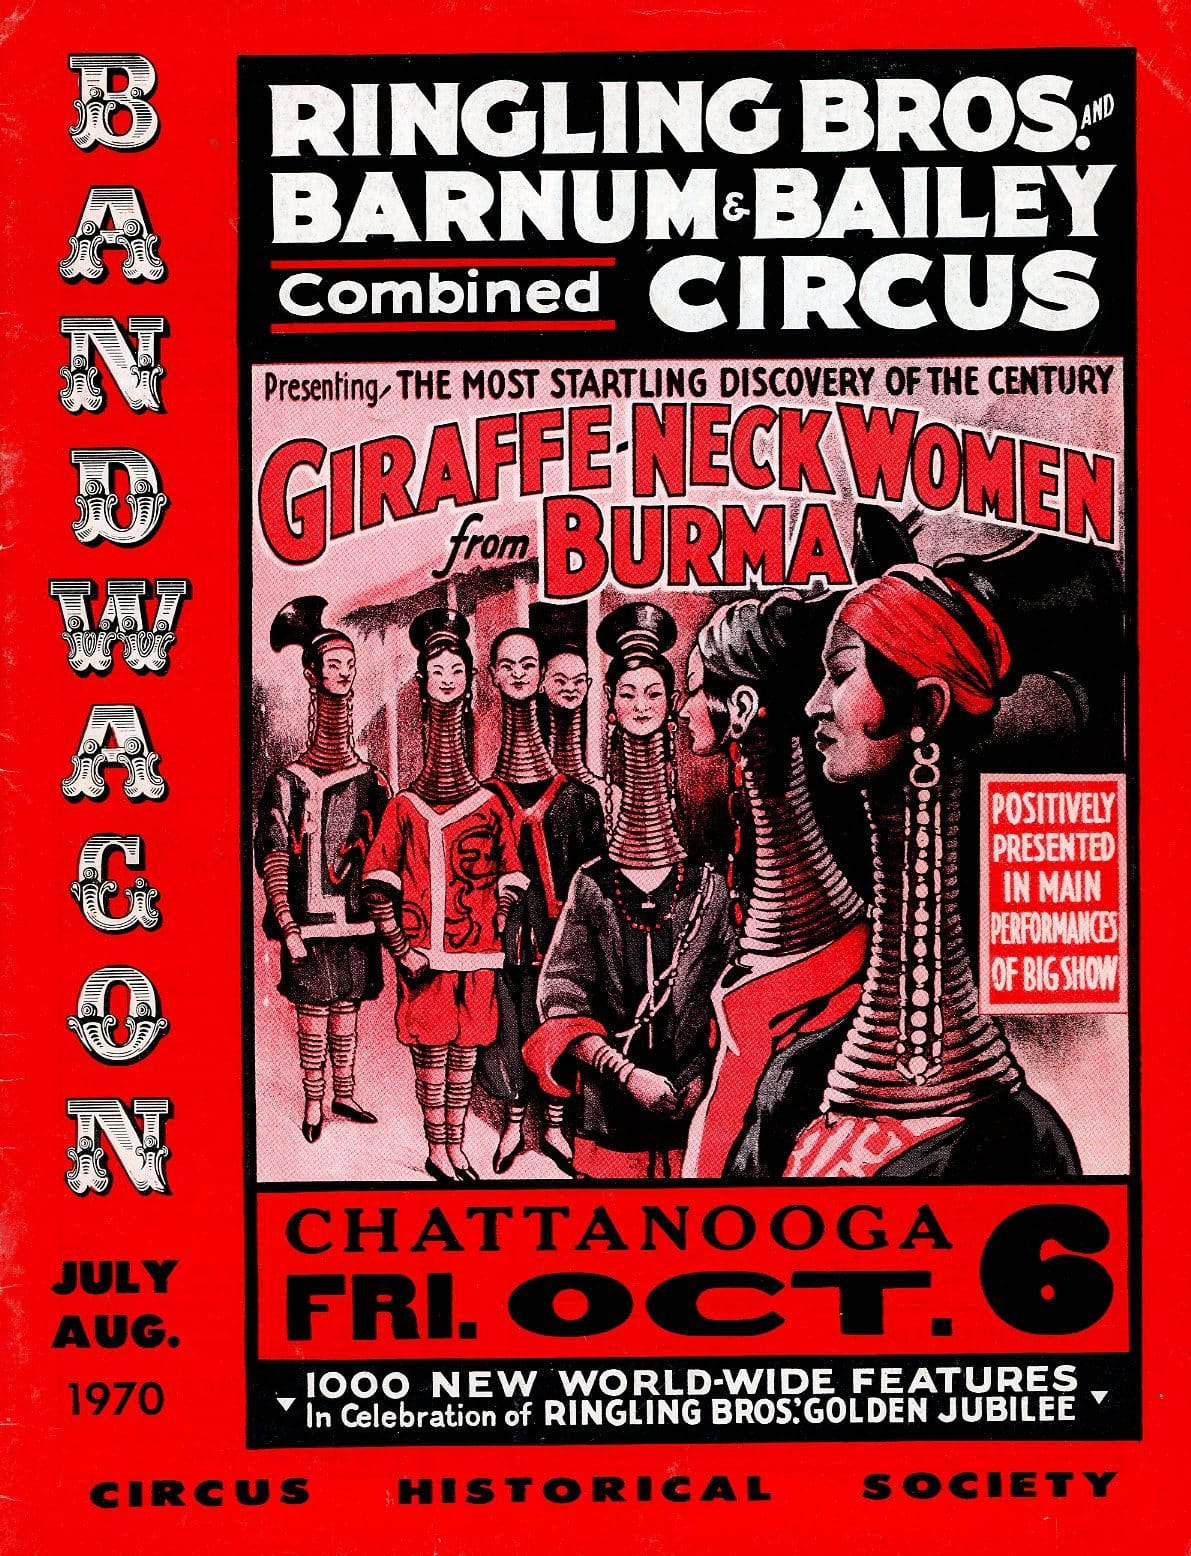 Bandwagon Magazine Back Issue - July/August 1970 - Circus Memorabilia